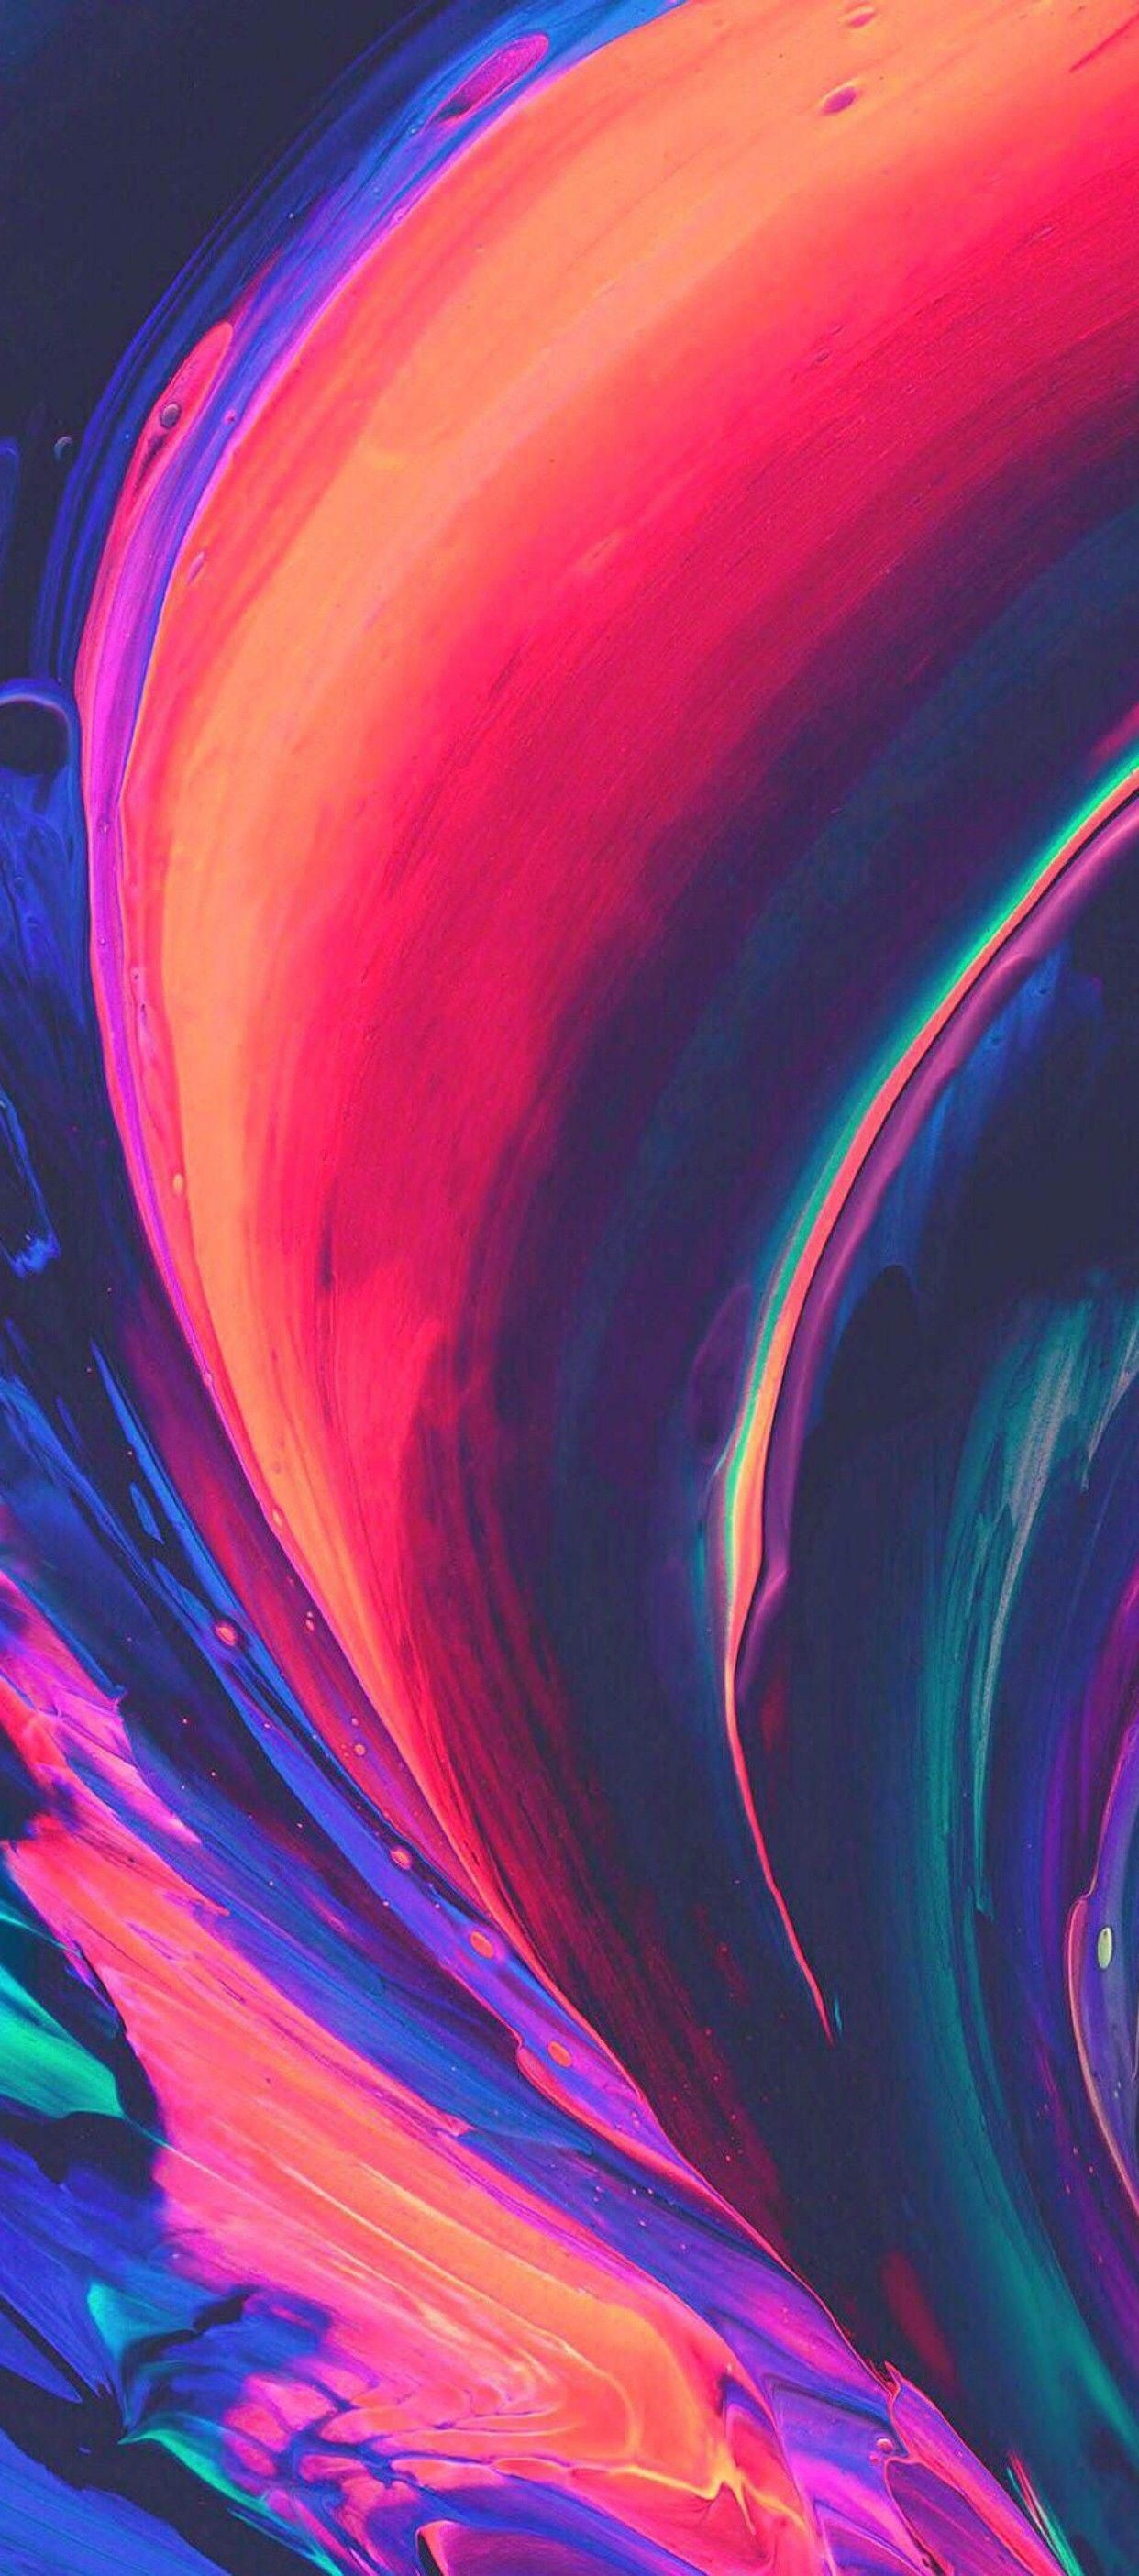 Ios 11 Iphone X Purple Blue Clean Simple Abstract Apple Wallpaper Iphone 8 Clean Bea Abstract Iphone Wallpaper Abstract Wallpaper Painting Wallpaper